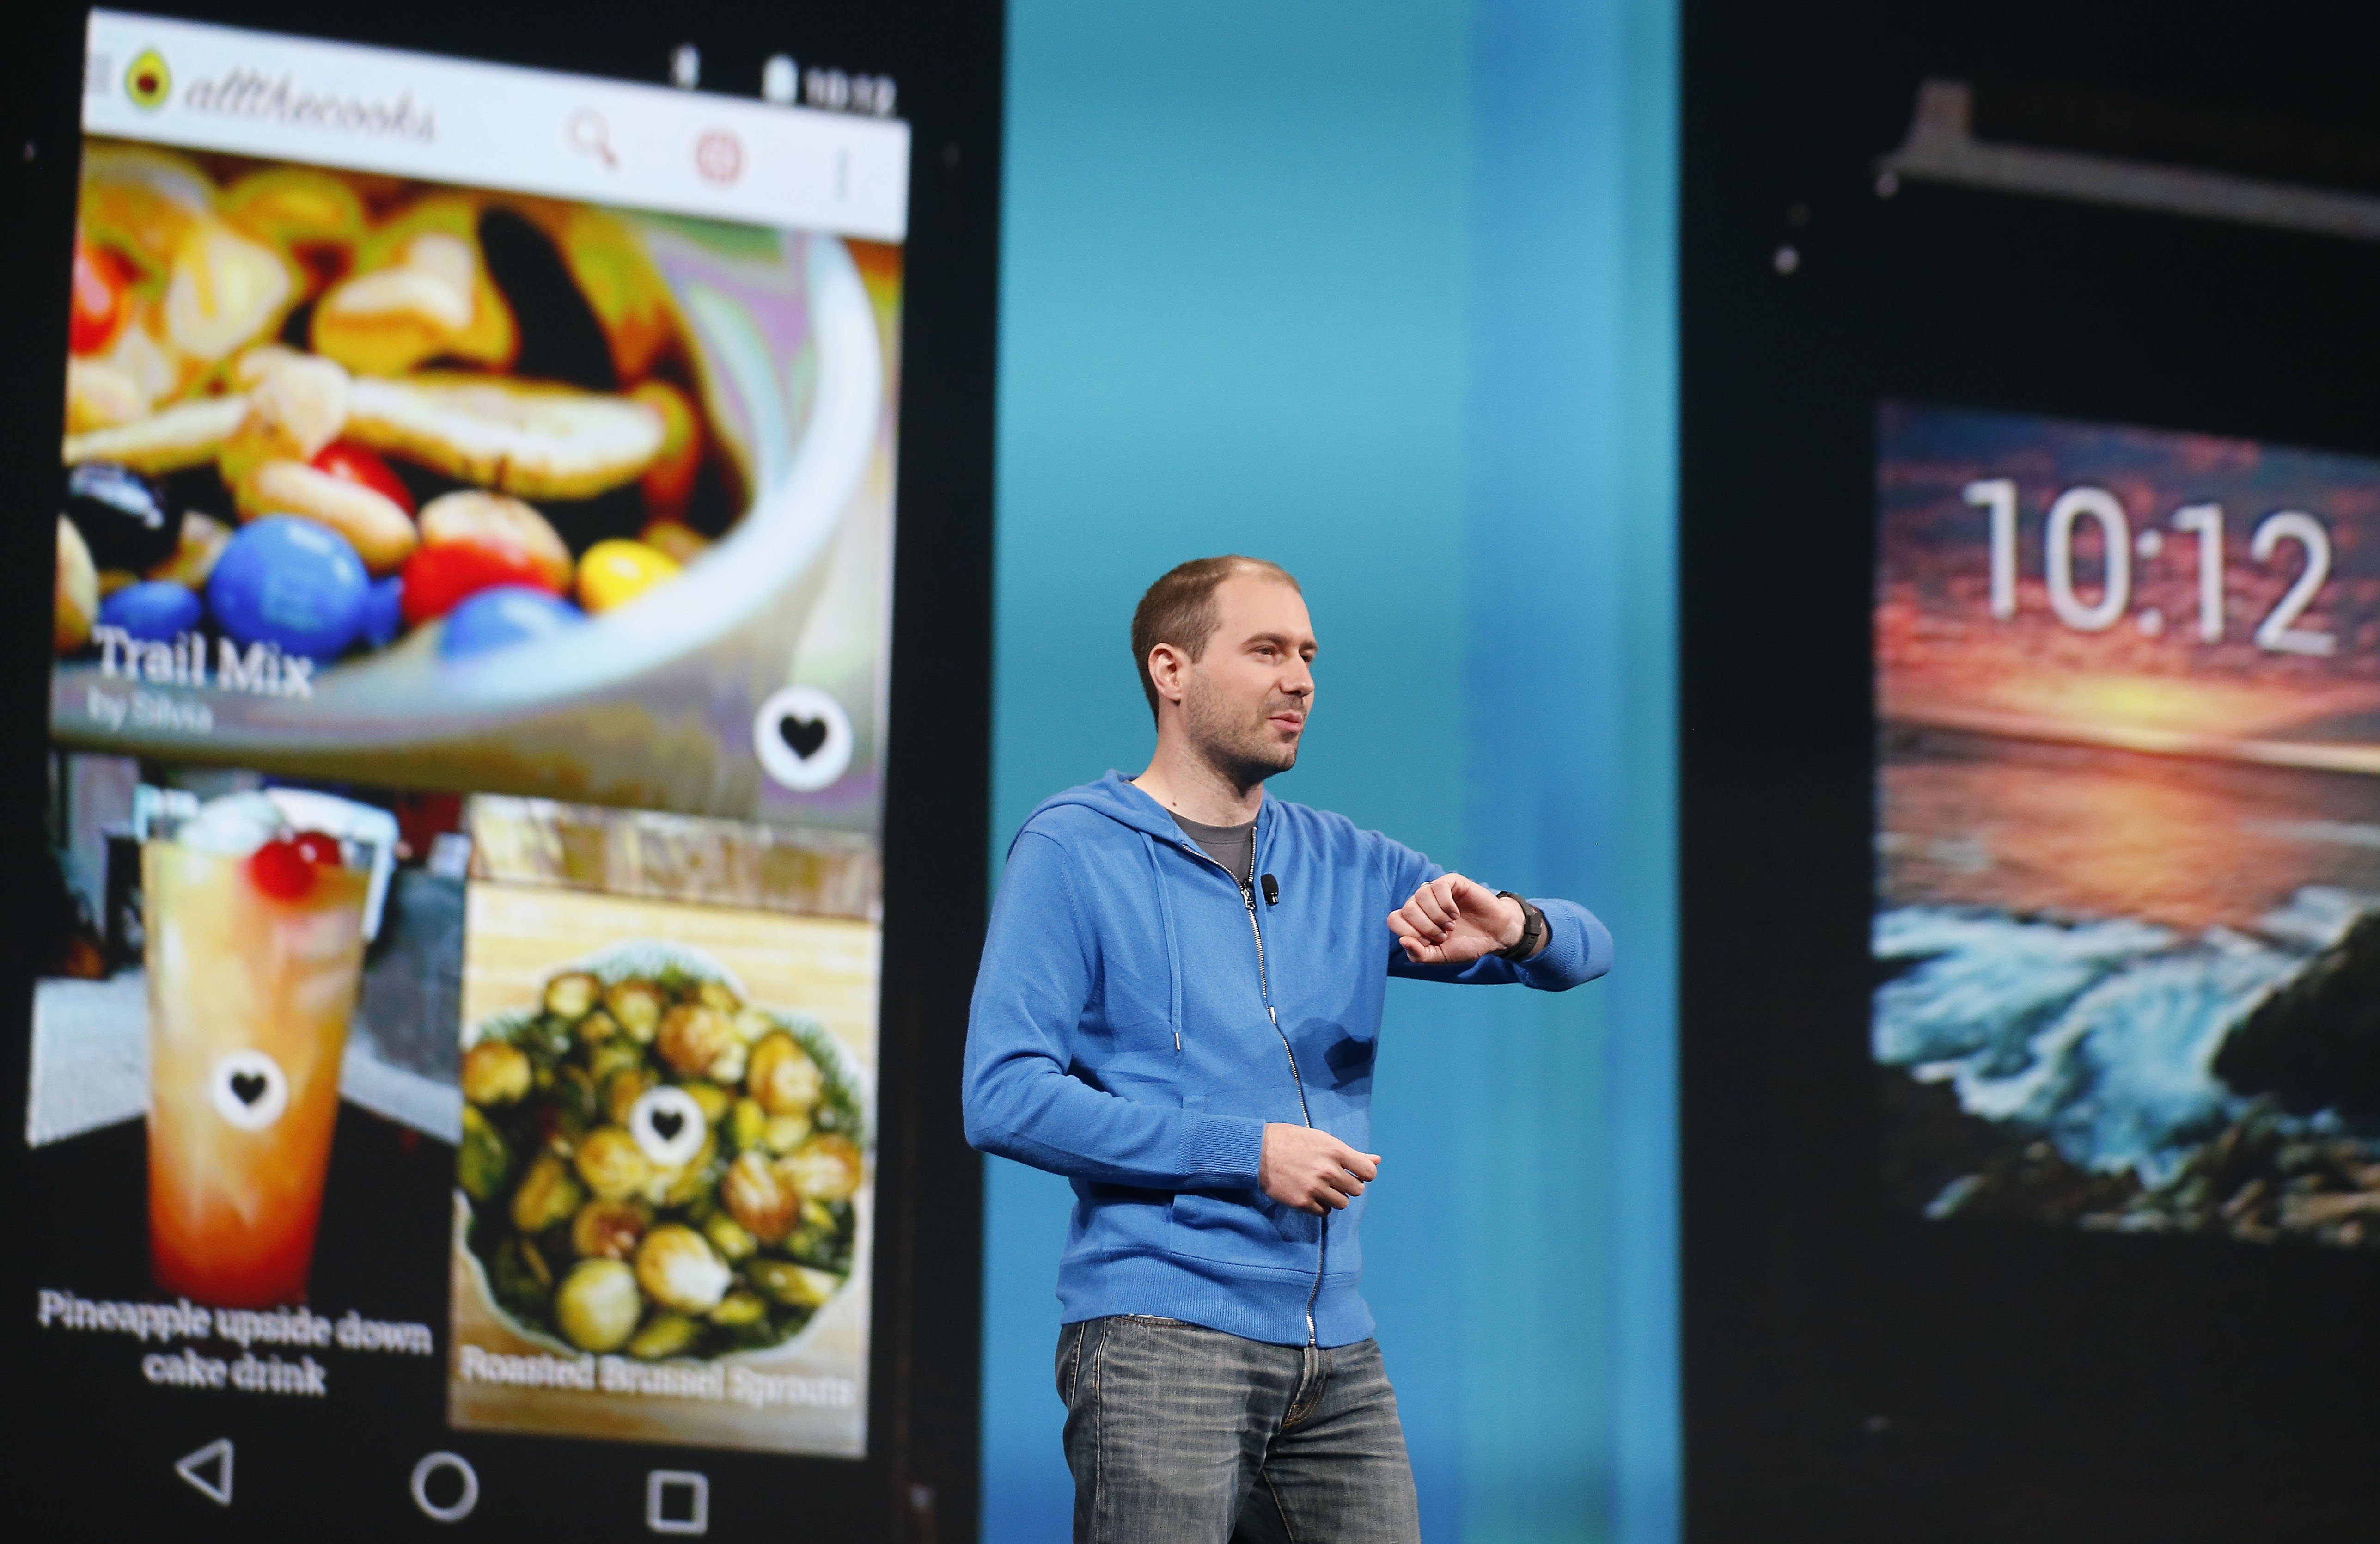 David Singleton, Director of Engineering at Android, introduces LG G Watch during the Google I/O keynote at the the Moscone Center, on Wednesday, June 25, 2014, in San Francisco.